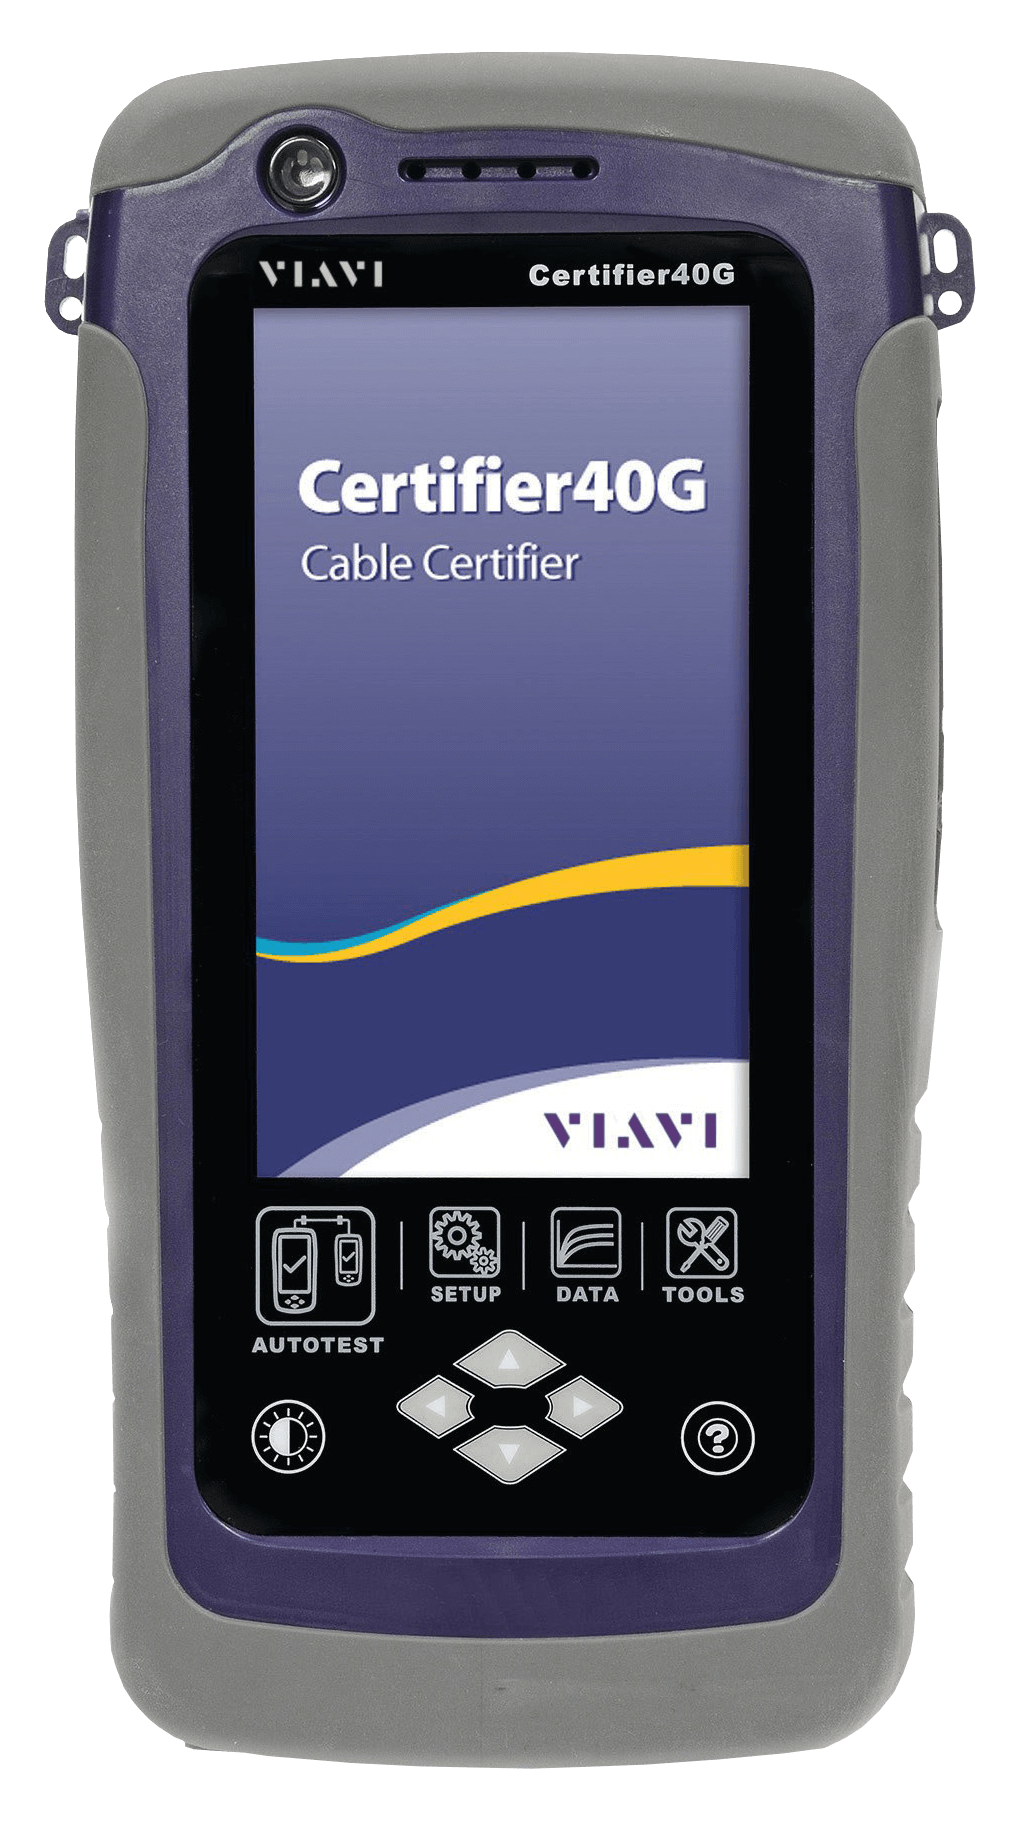 VIAVI Certifier40G Copper and Fiber Test, Certification and Analysis Device -5